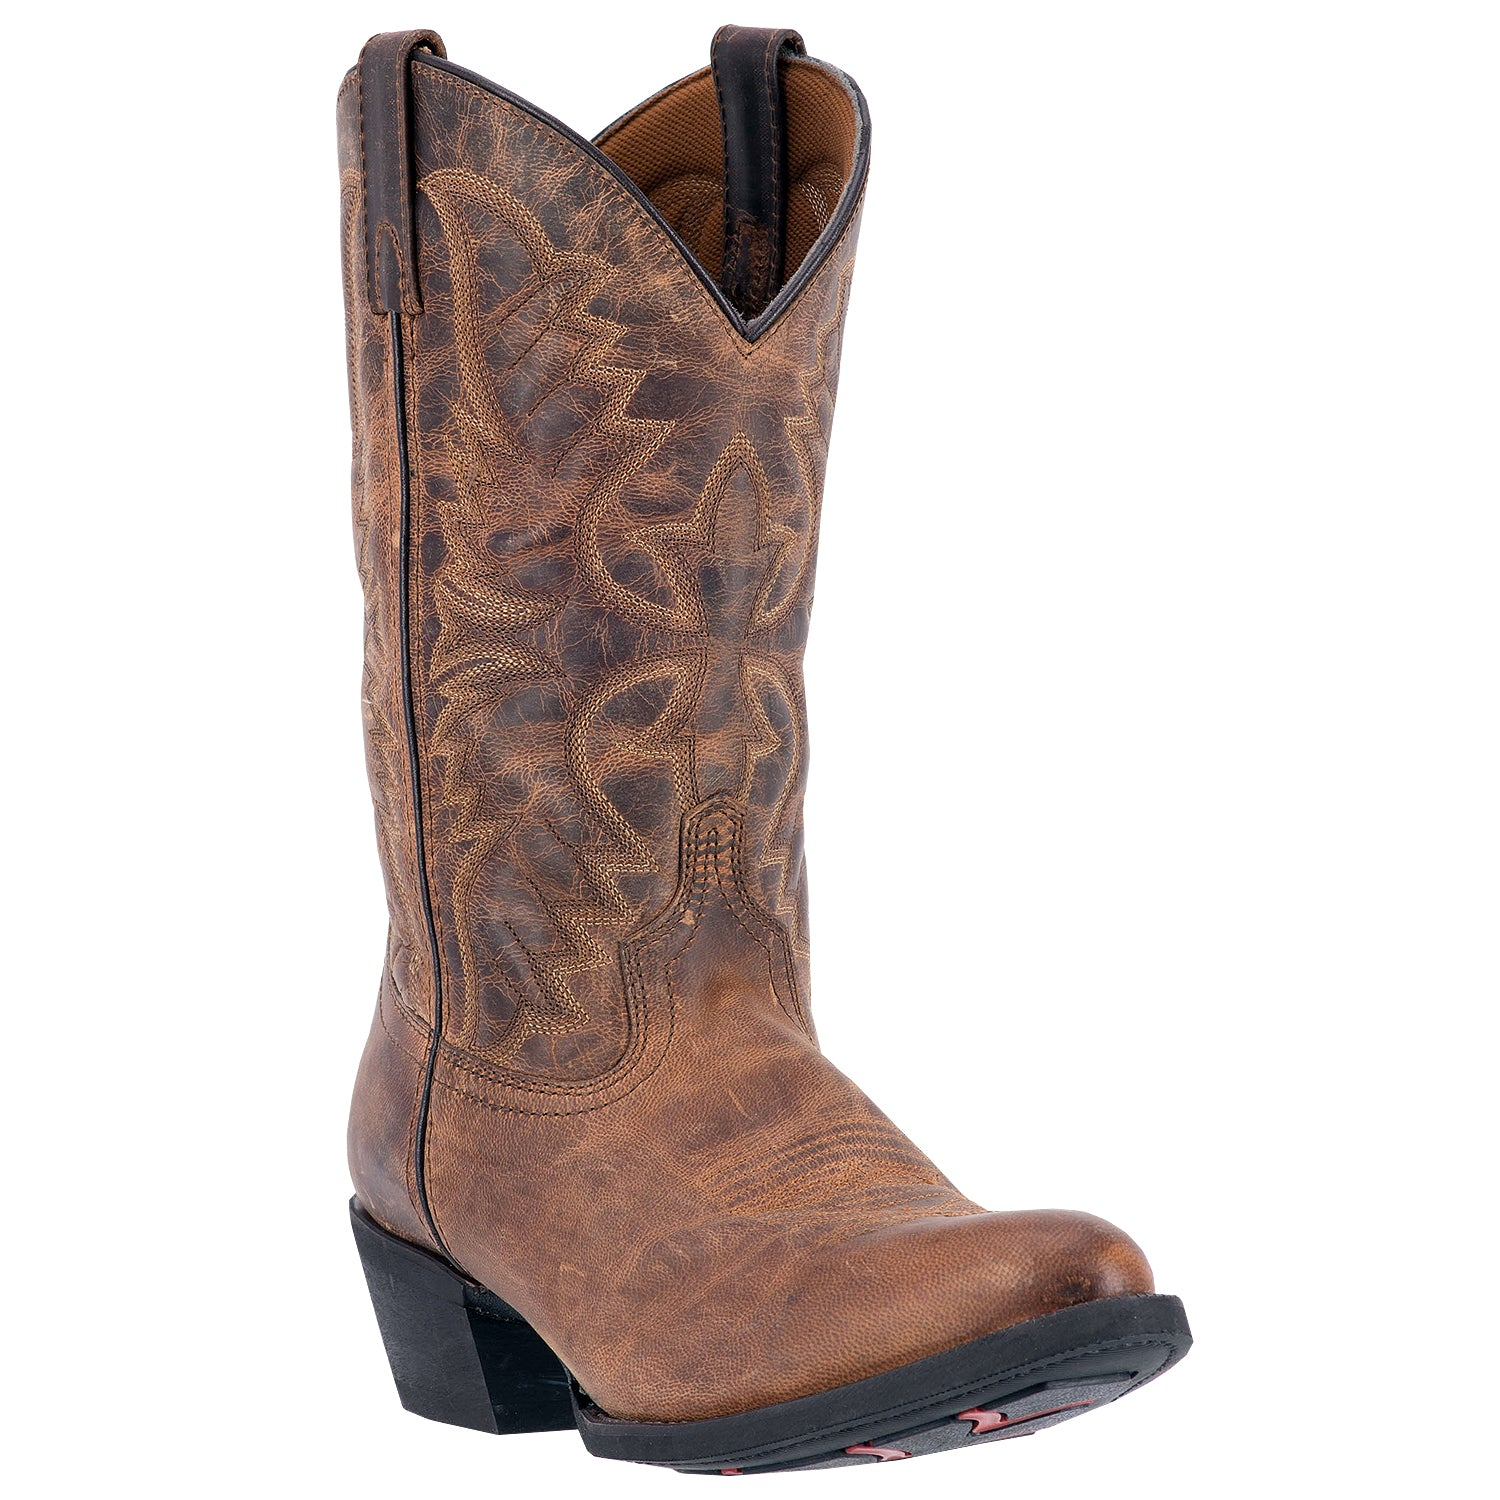 BIRCHWOOD LEATHER BOOT 4410063323178